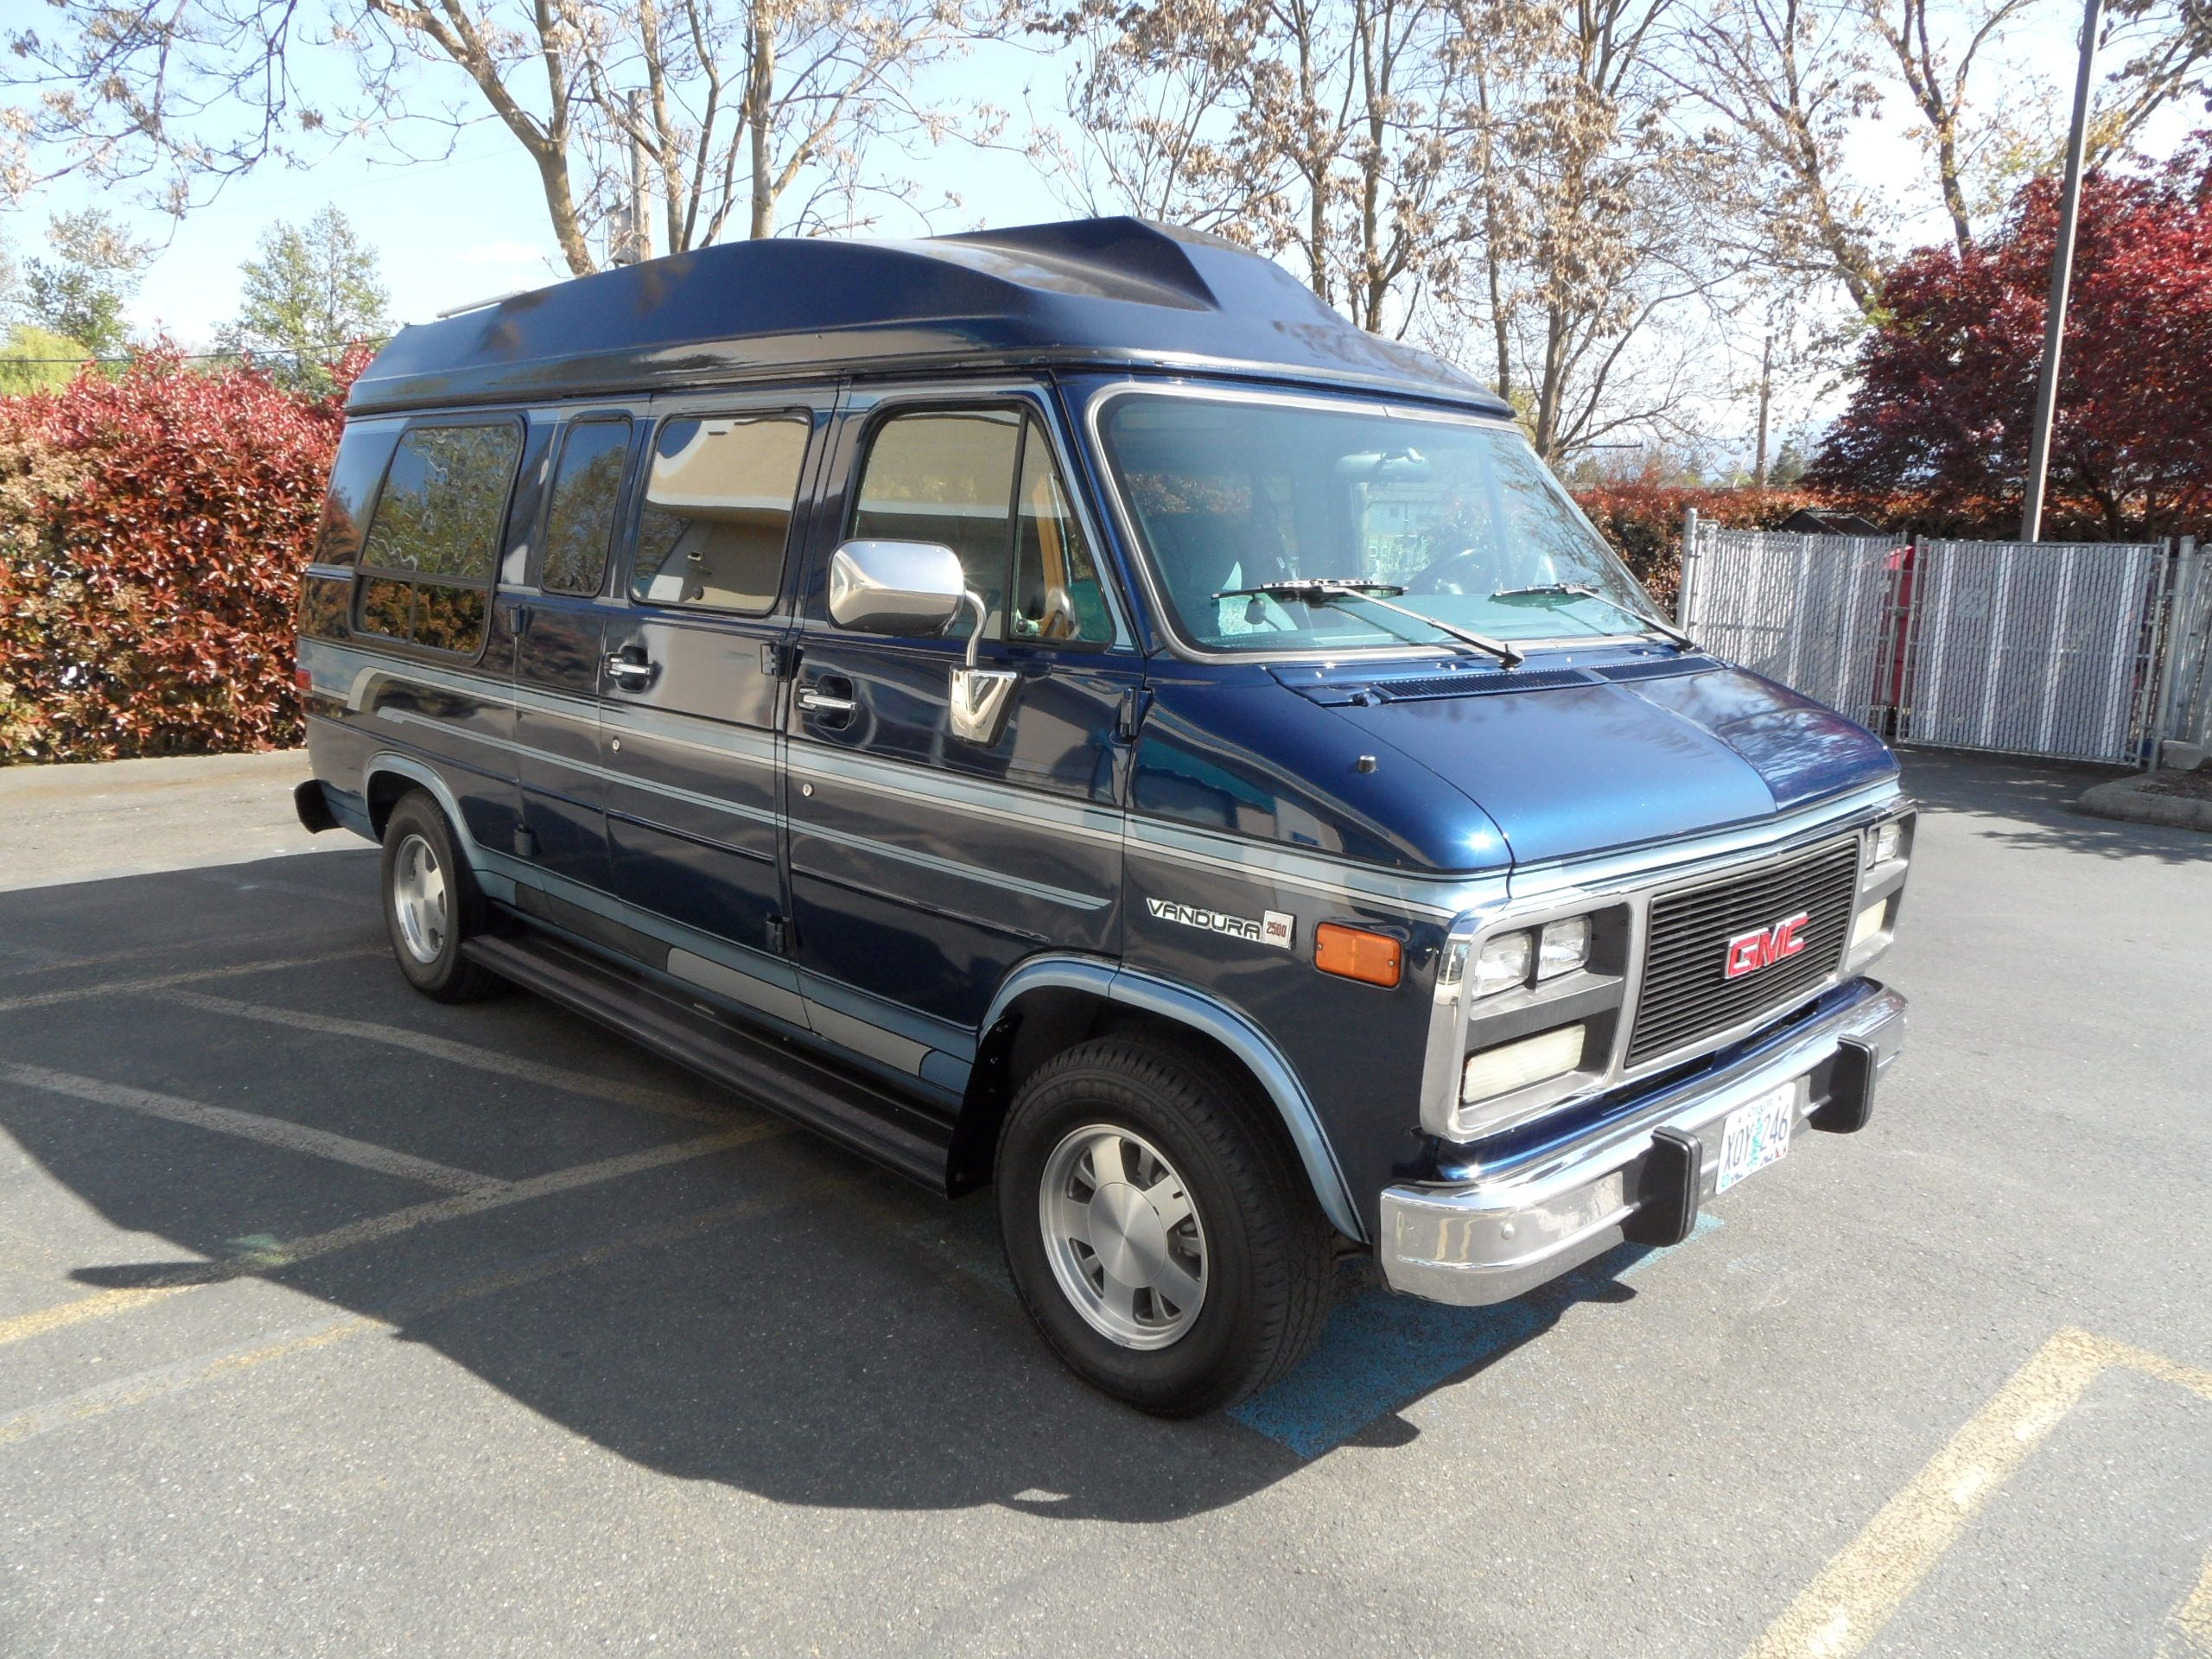 1995 gmc vandura 2500 classic cars gmc vans chevrolet. Black Bedroom Furniture Sets. Home Design Ideas